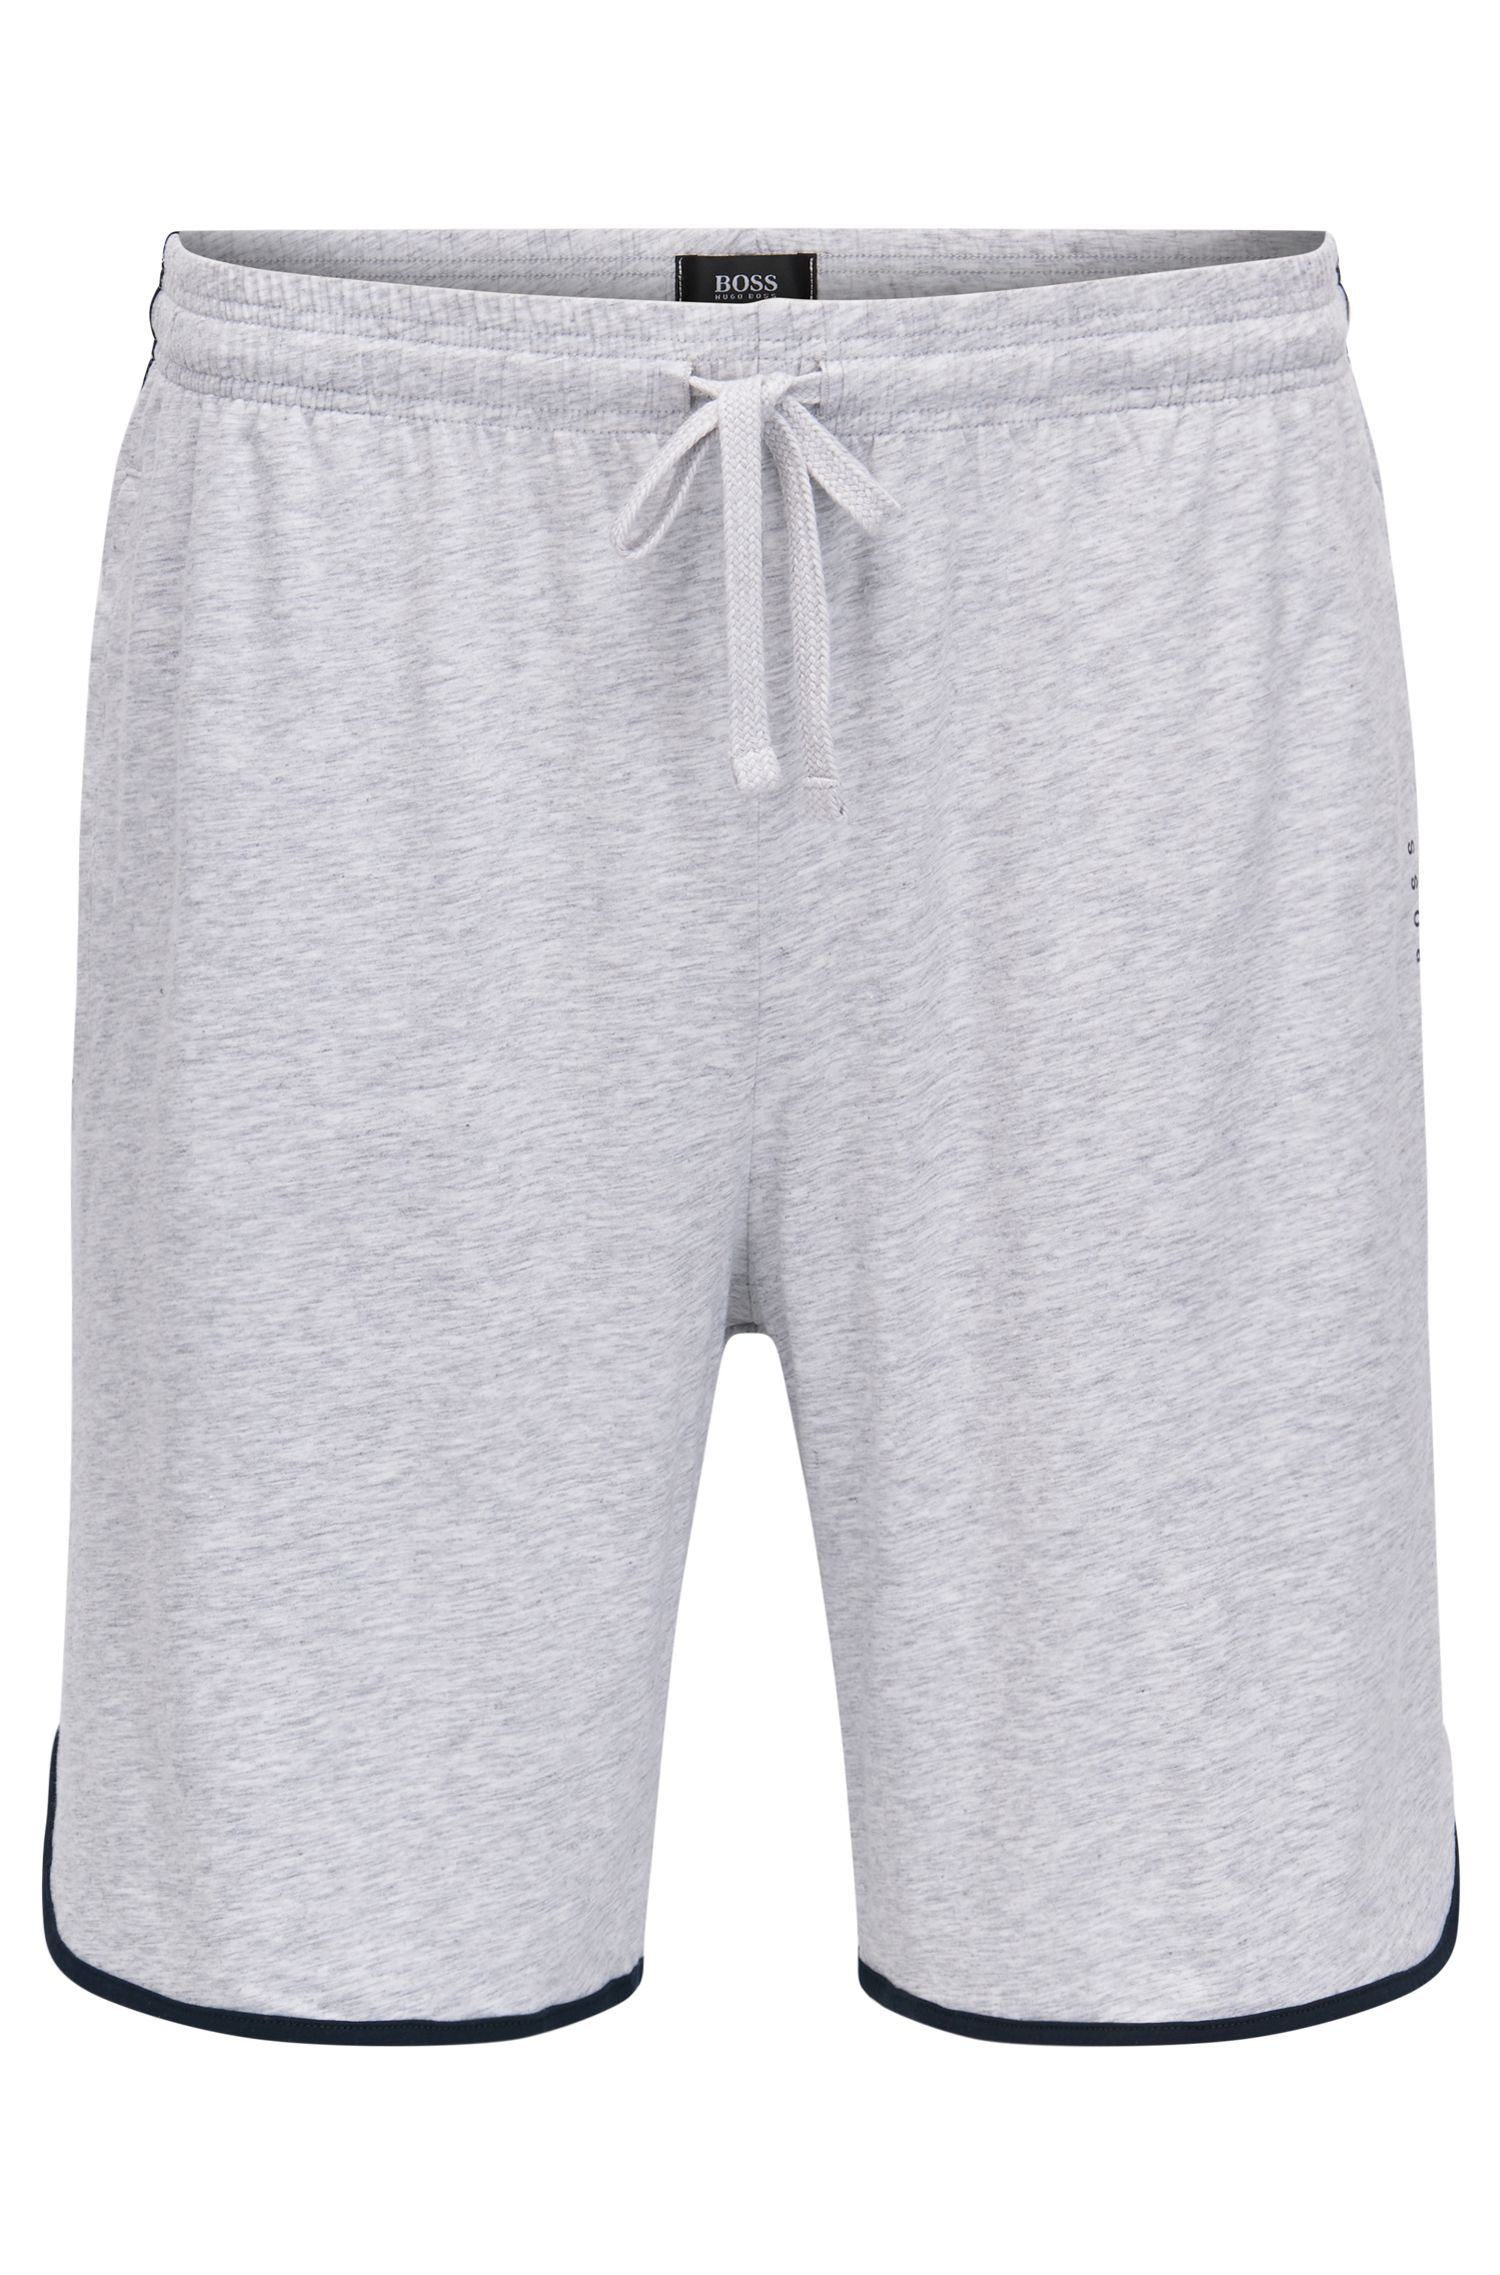 Jersey pyjama shorts with drawstring waist and contrast piping